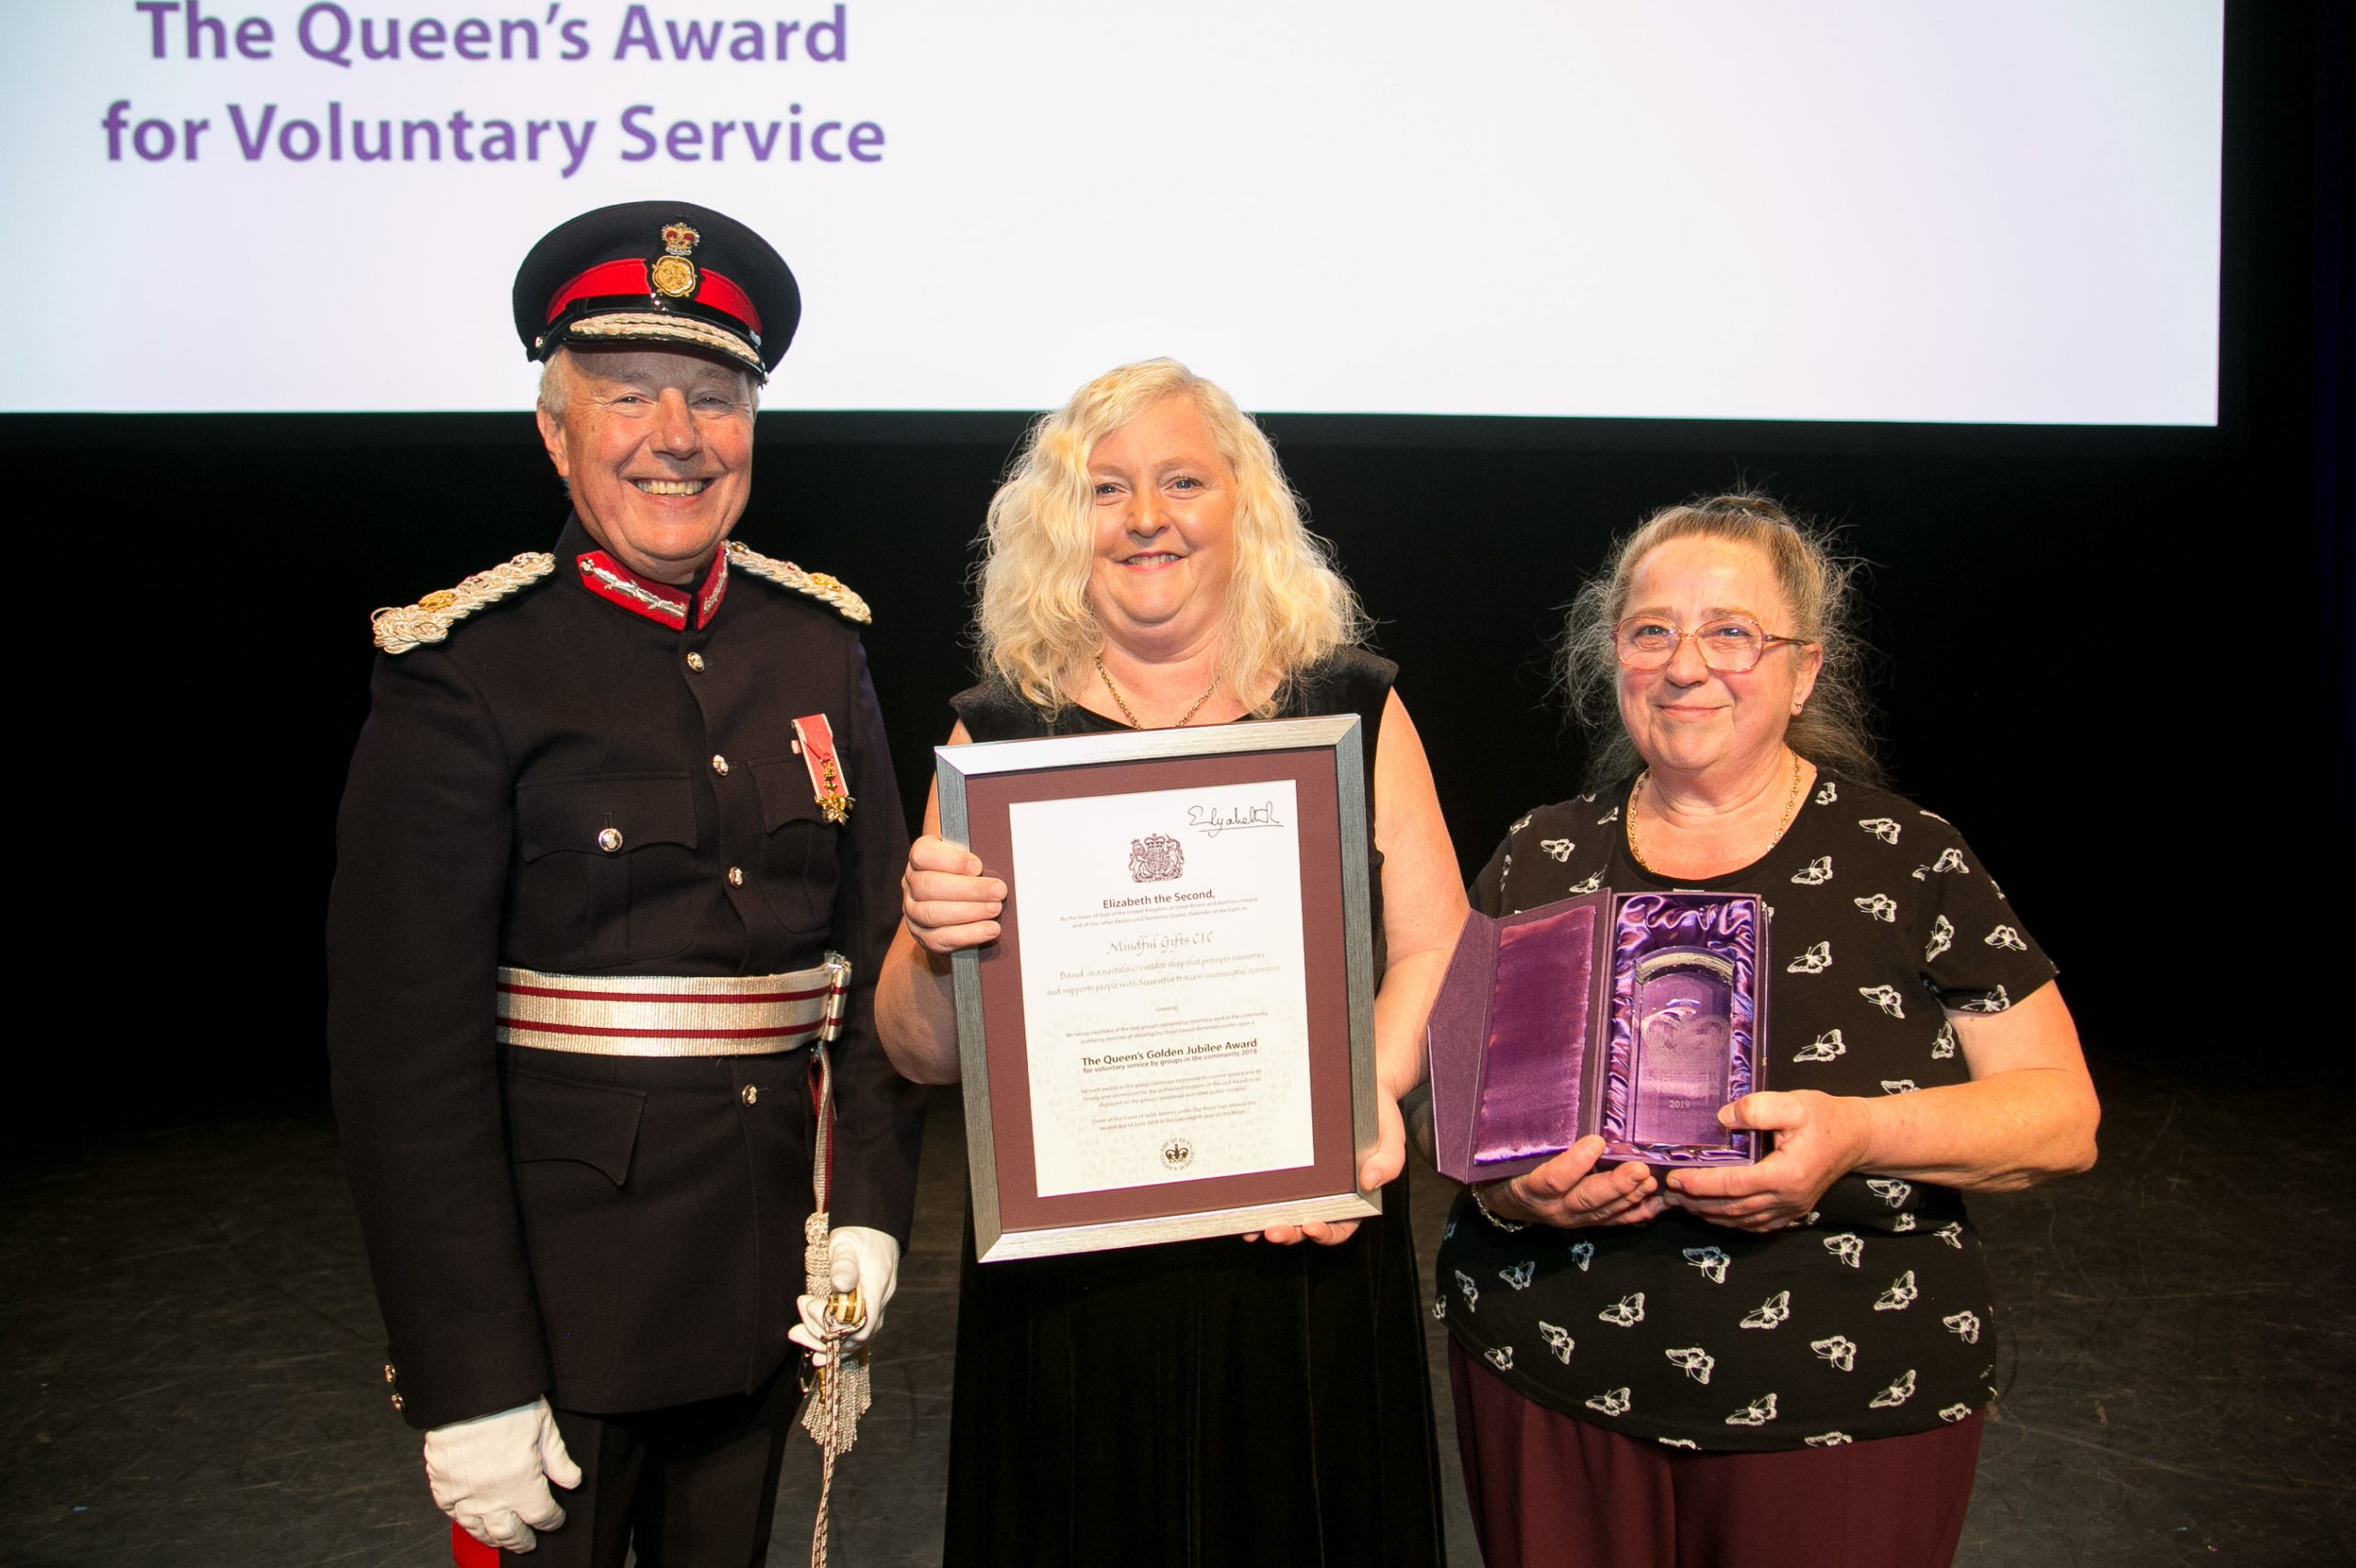 Mindful Gifts Receiving Queen's Award for Voluntary Service